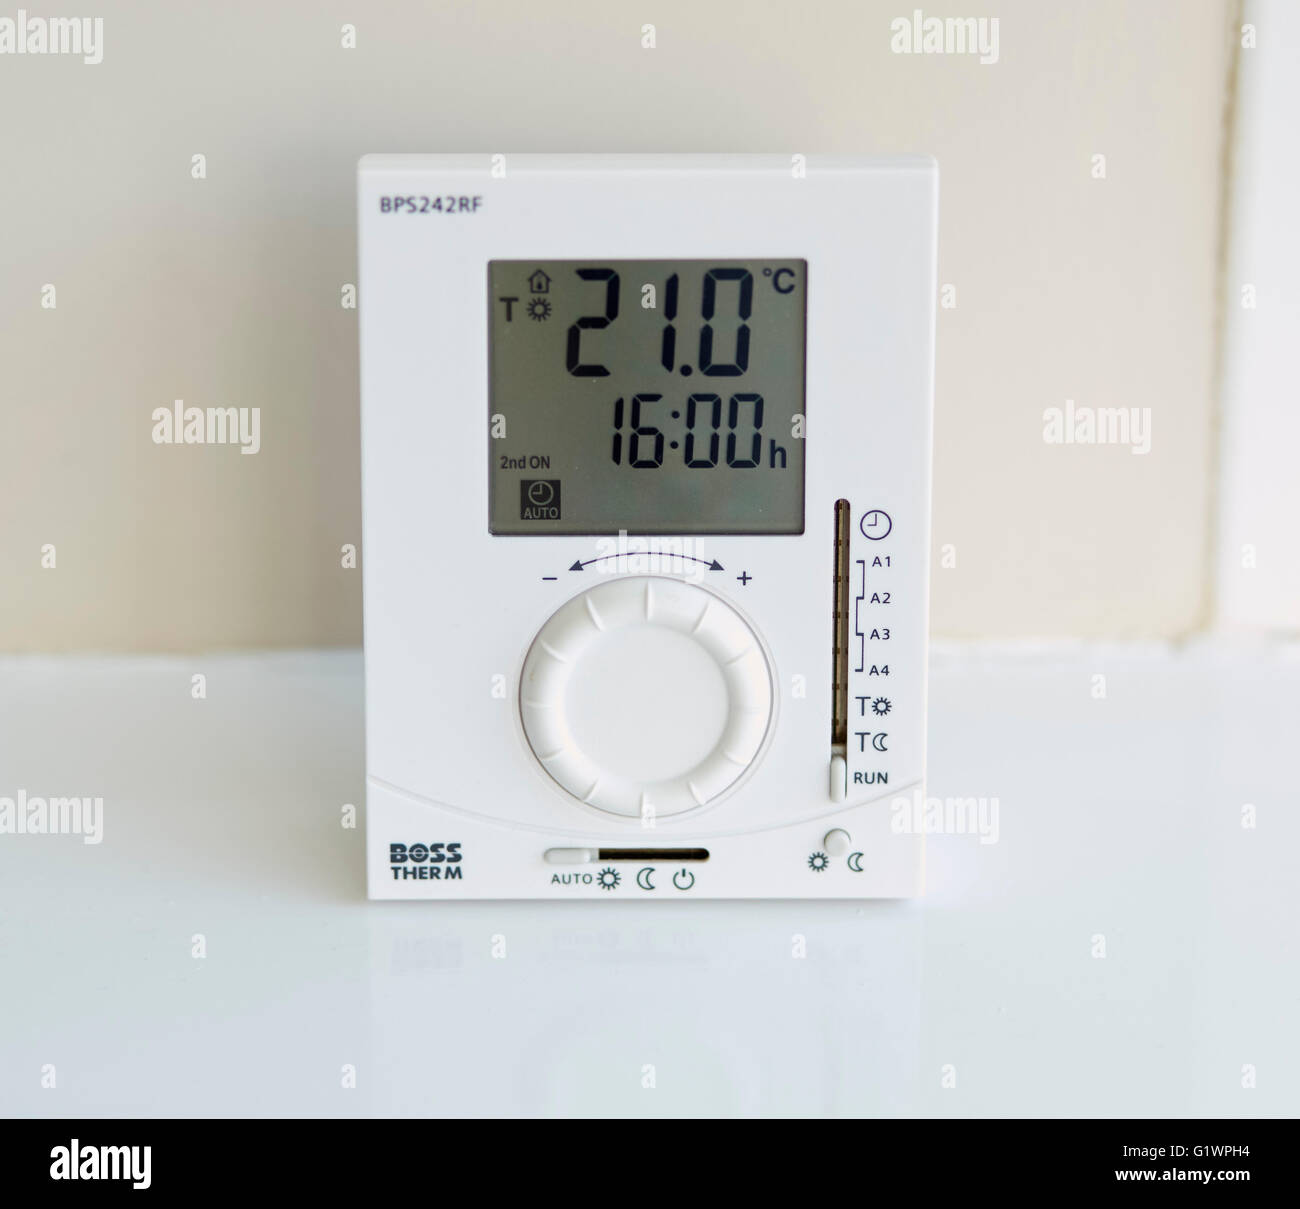 Heating thermostat control panel - Stock Image